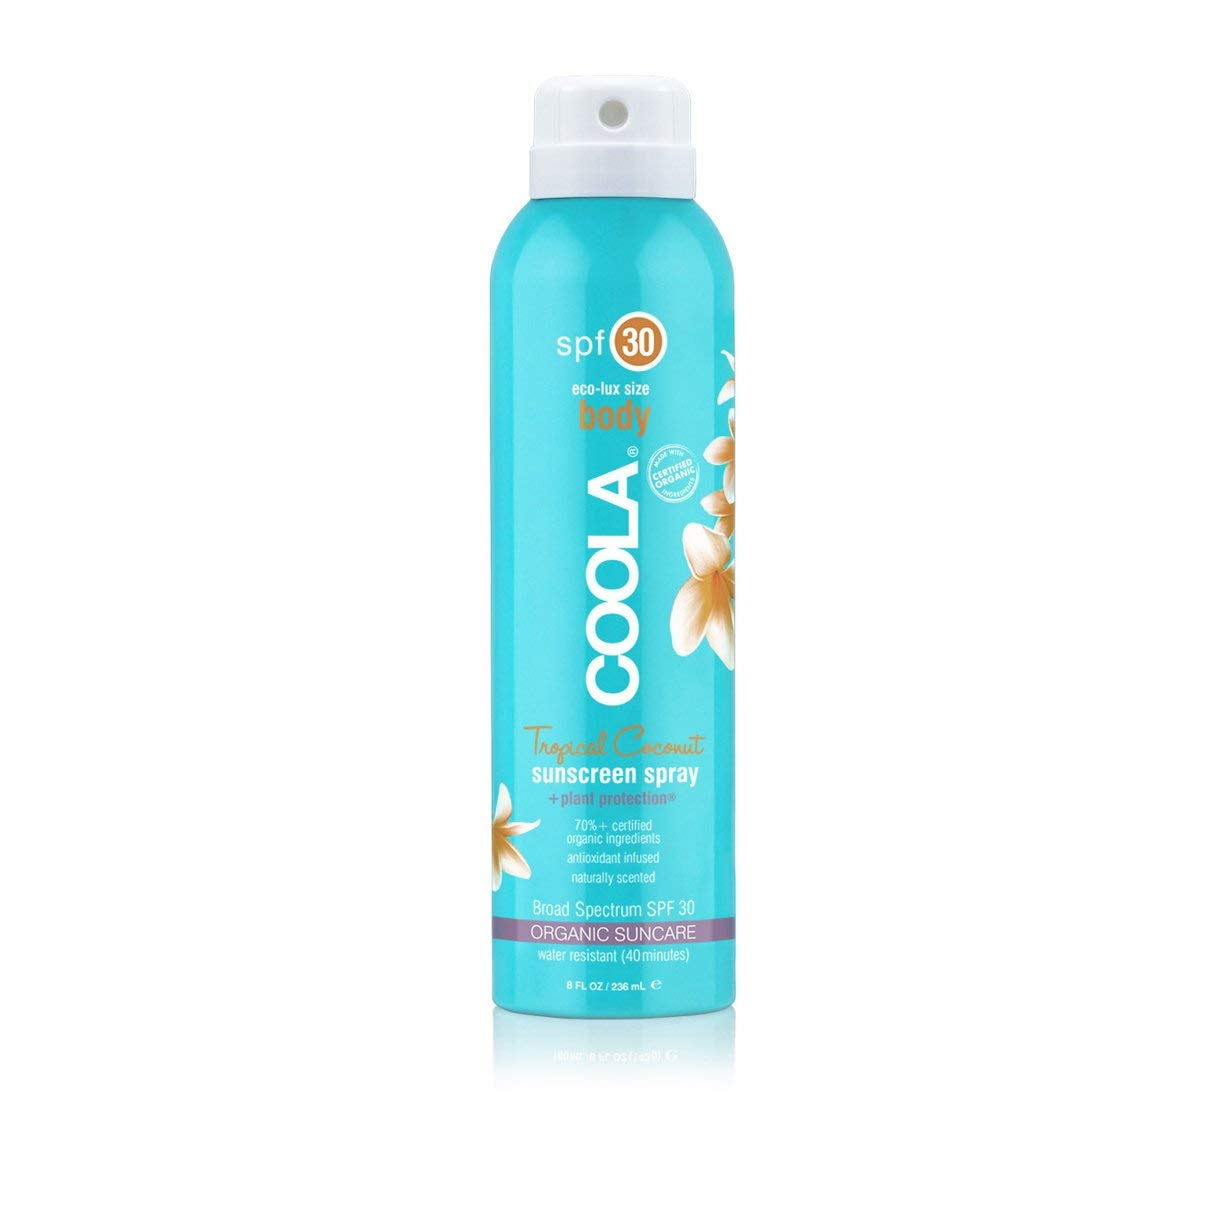 Coola Sunscreen - Coola Sunscreen is one of THE best sunscreens you can buy. It smells delicious and the stuff works. We promise.